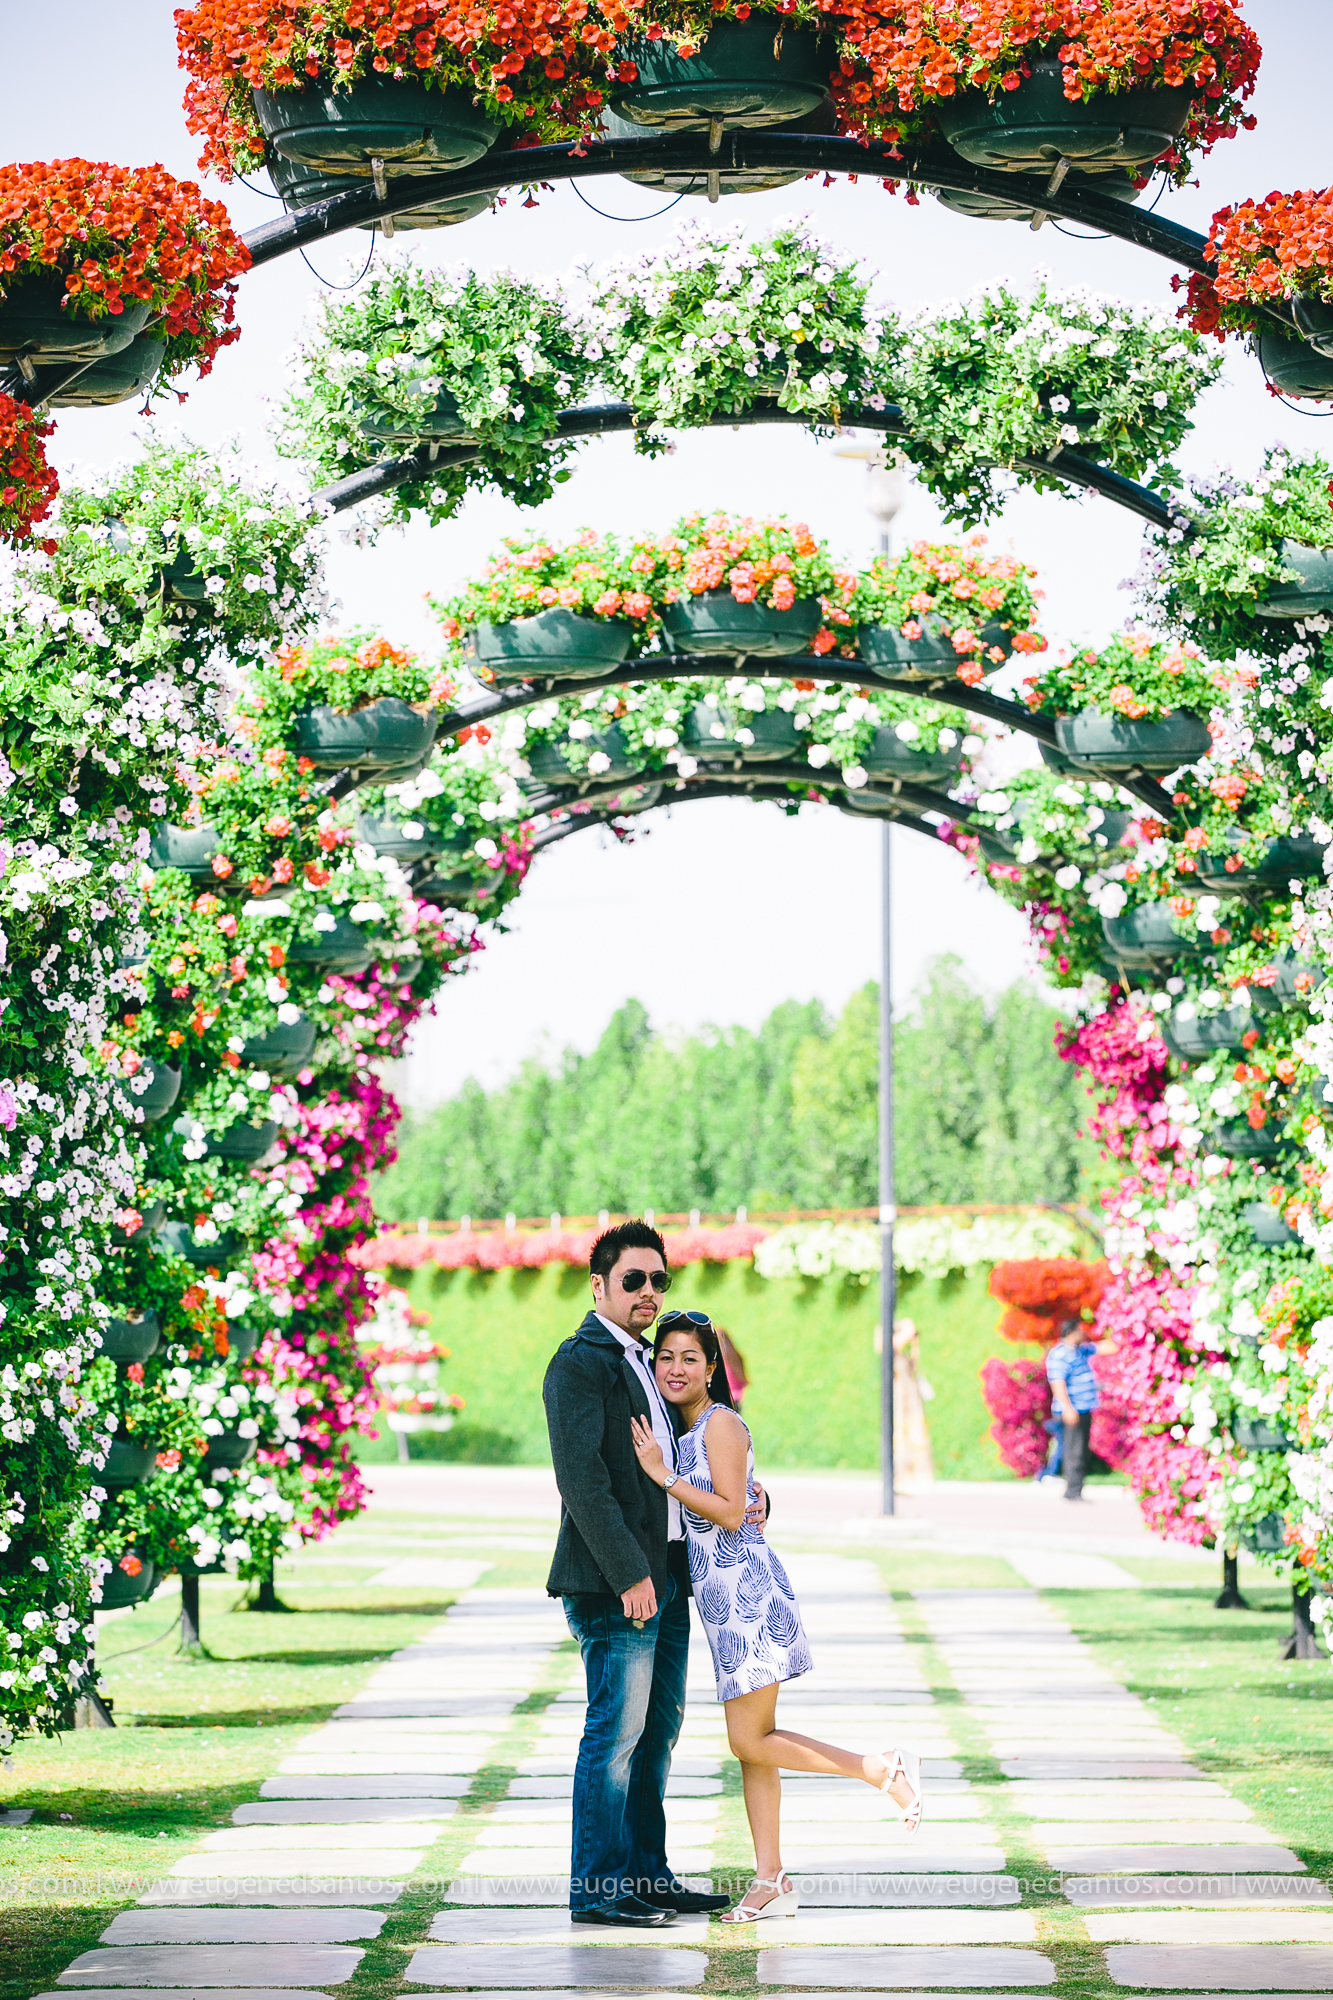 ES - Dubai Wedding Photography DR-13.jpg